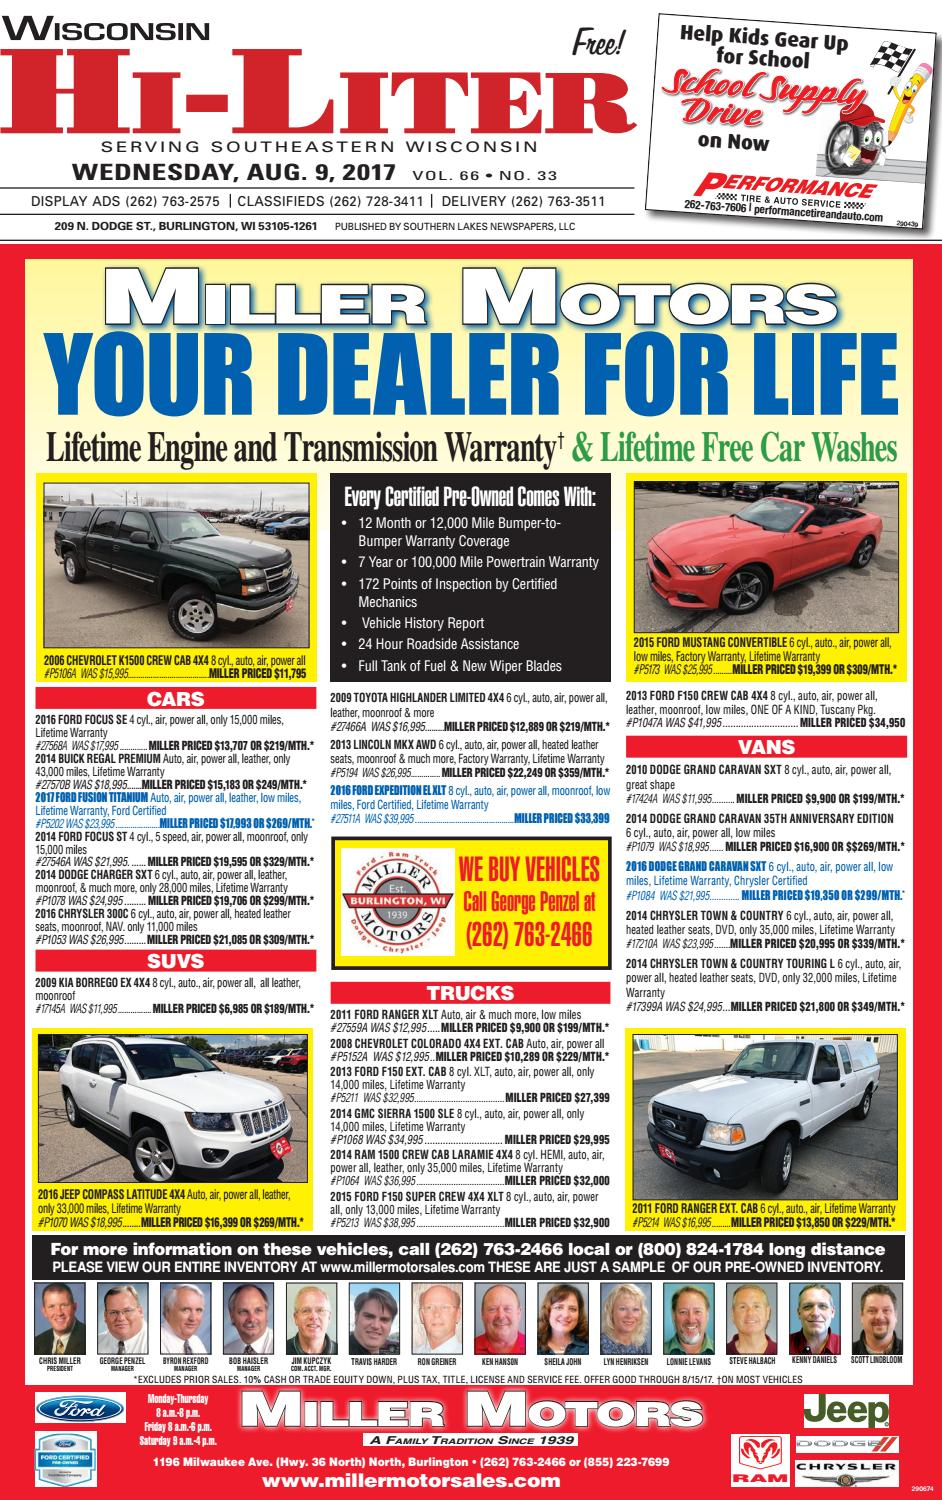 Miller Motors Burlington Wisconsin >> Wihl 8 9 17 By Southern Lakes Newspapers Rock Valley Publishing